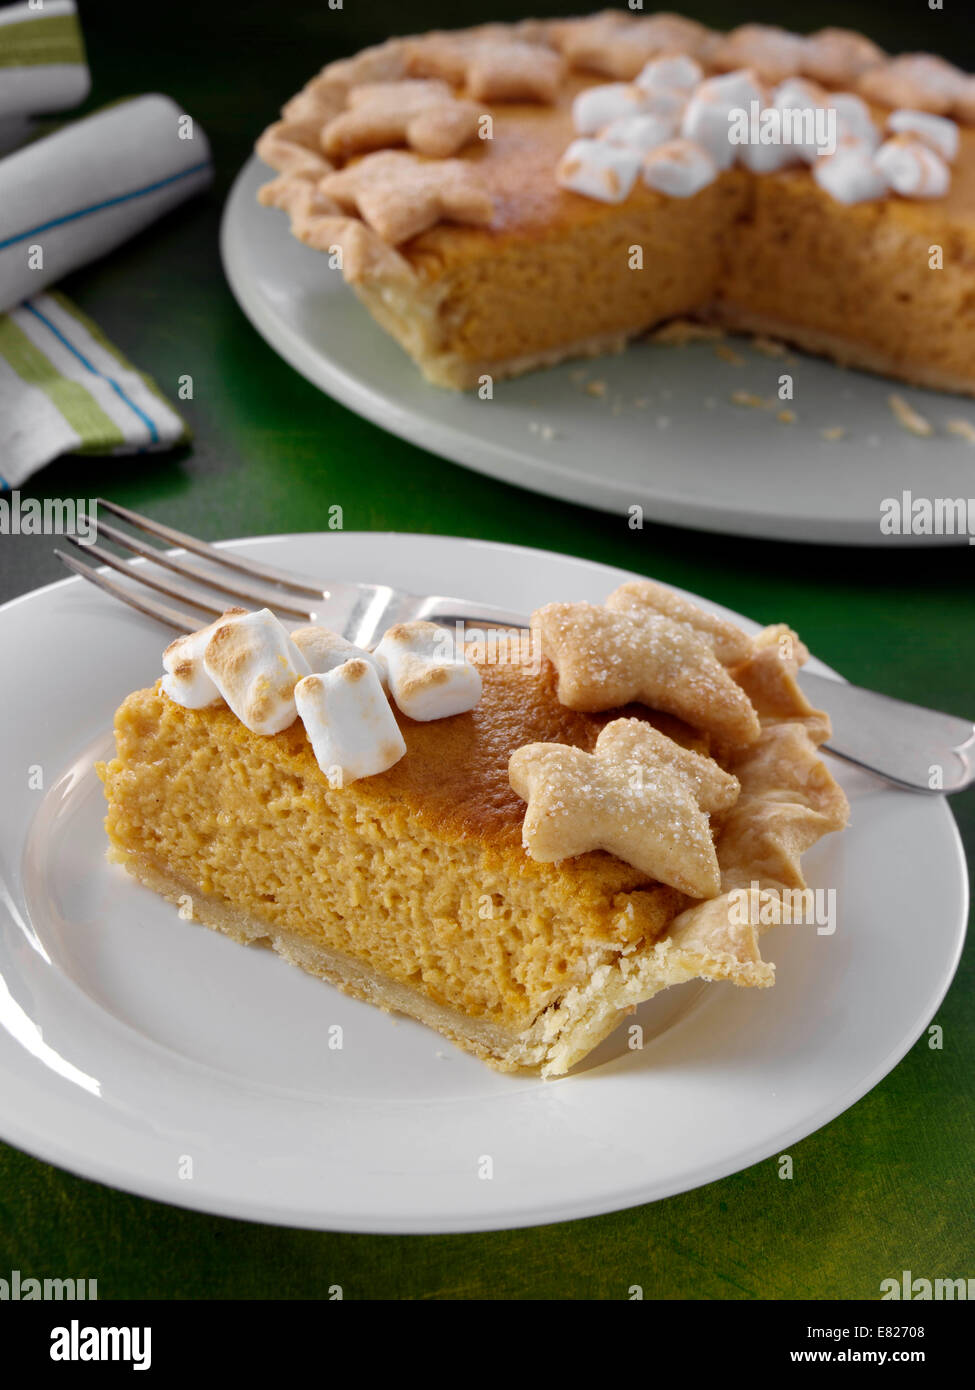 Old fashioned sweet potato pie traditional American dessert